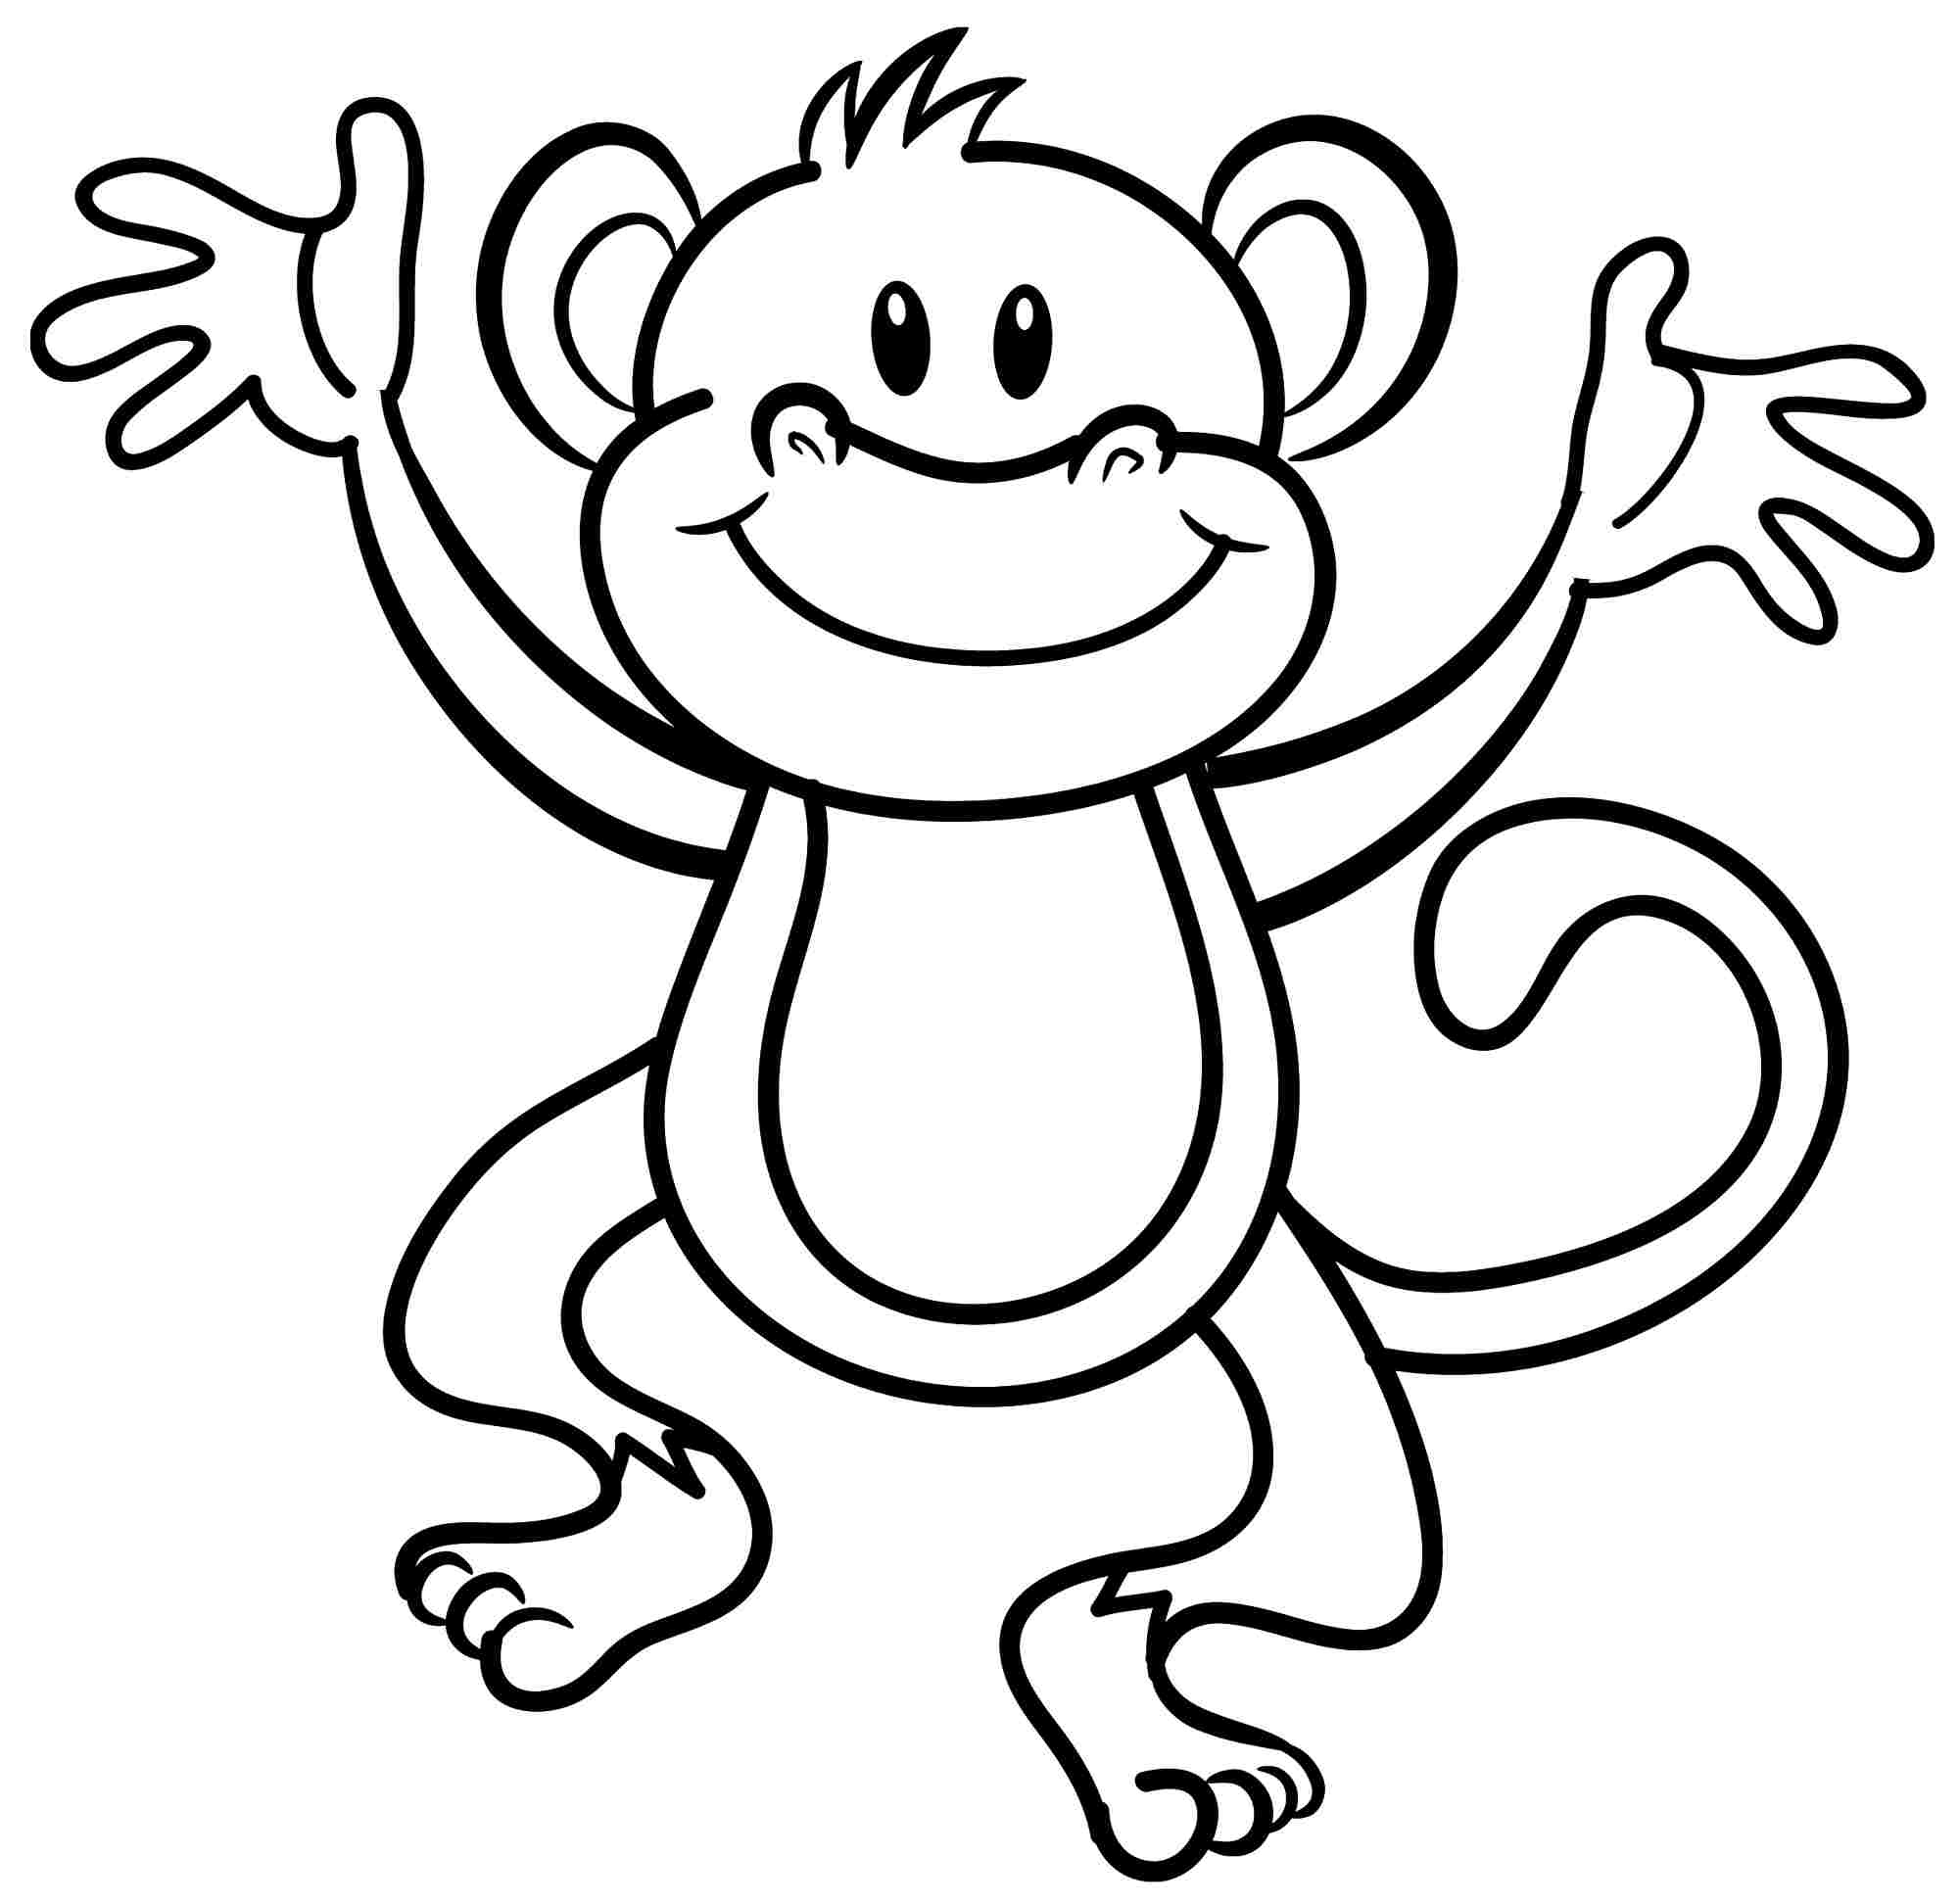 Monkey coloring #16, Download drawings